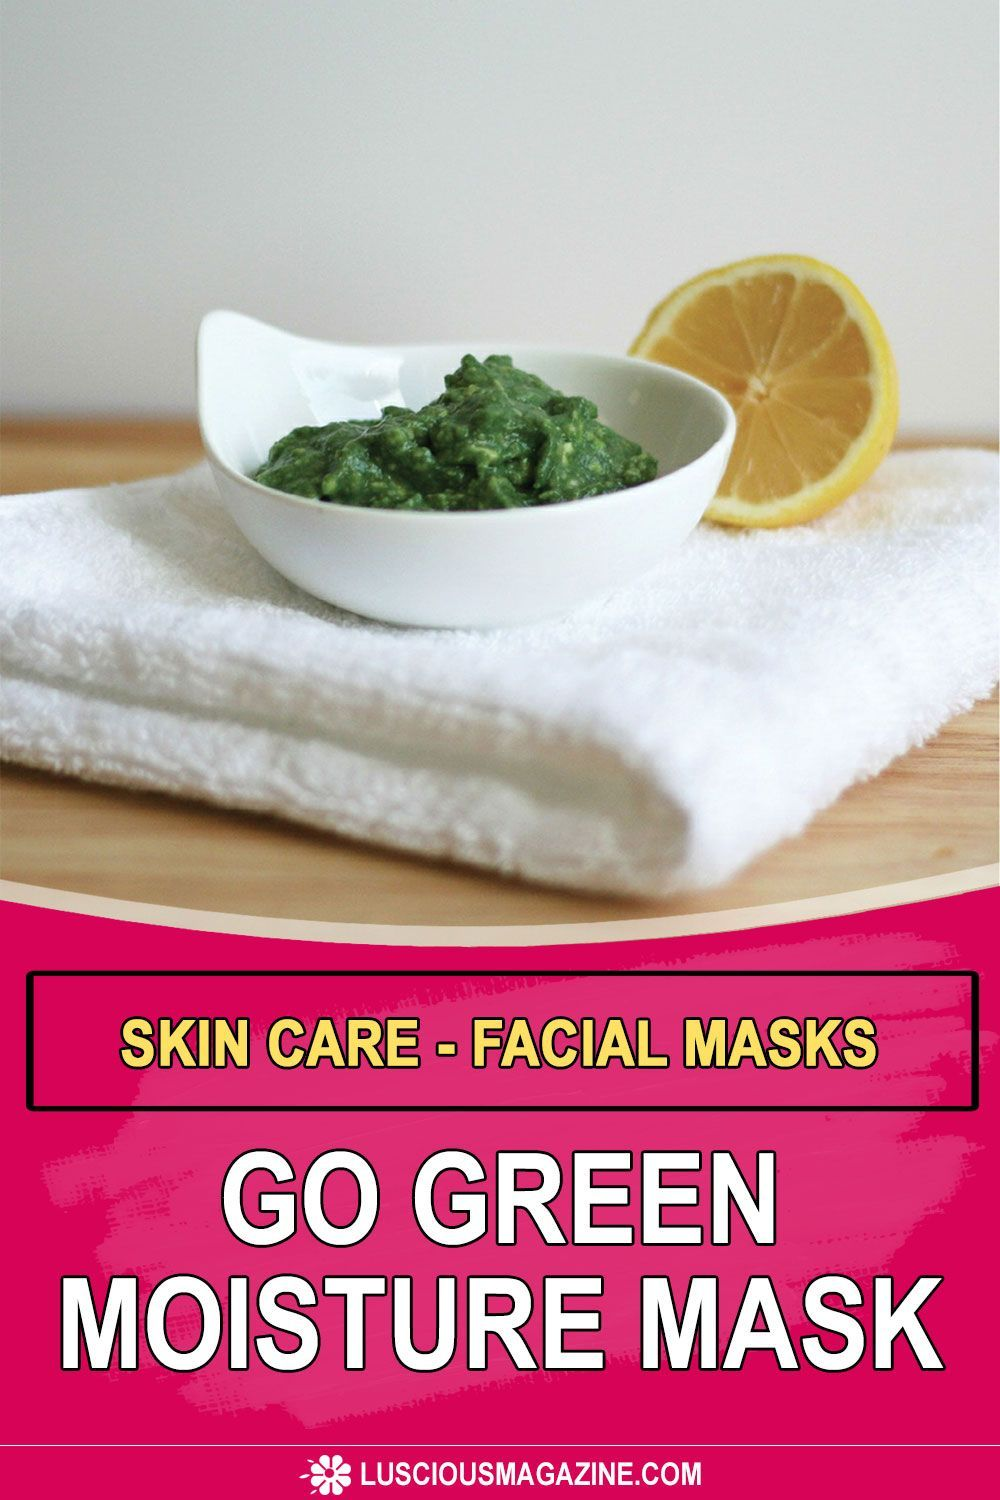 Go green with the avocado and spirulina found in this recipe and your skin will glow from the life-giving vitamins, emollients, and vital antioxidants in this super-nutrient-charged facial mask... #homeremedies #homemadeproducts #homemade #herbs #flowers #garden #backyard #health #herbal #infusedoils #skincare #beauty #homeskincare #homebeauty #homefacemasks  #homebeauty #facemasks  #facialmasks #GreenMoistureMask  #MoistureMask